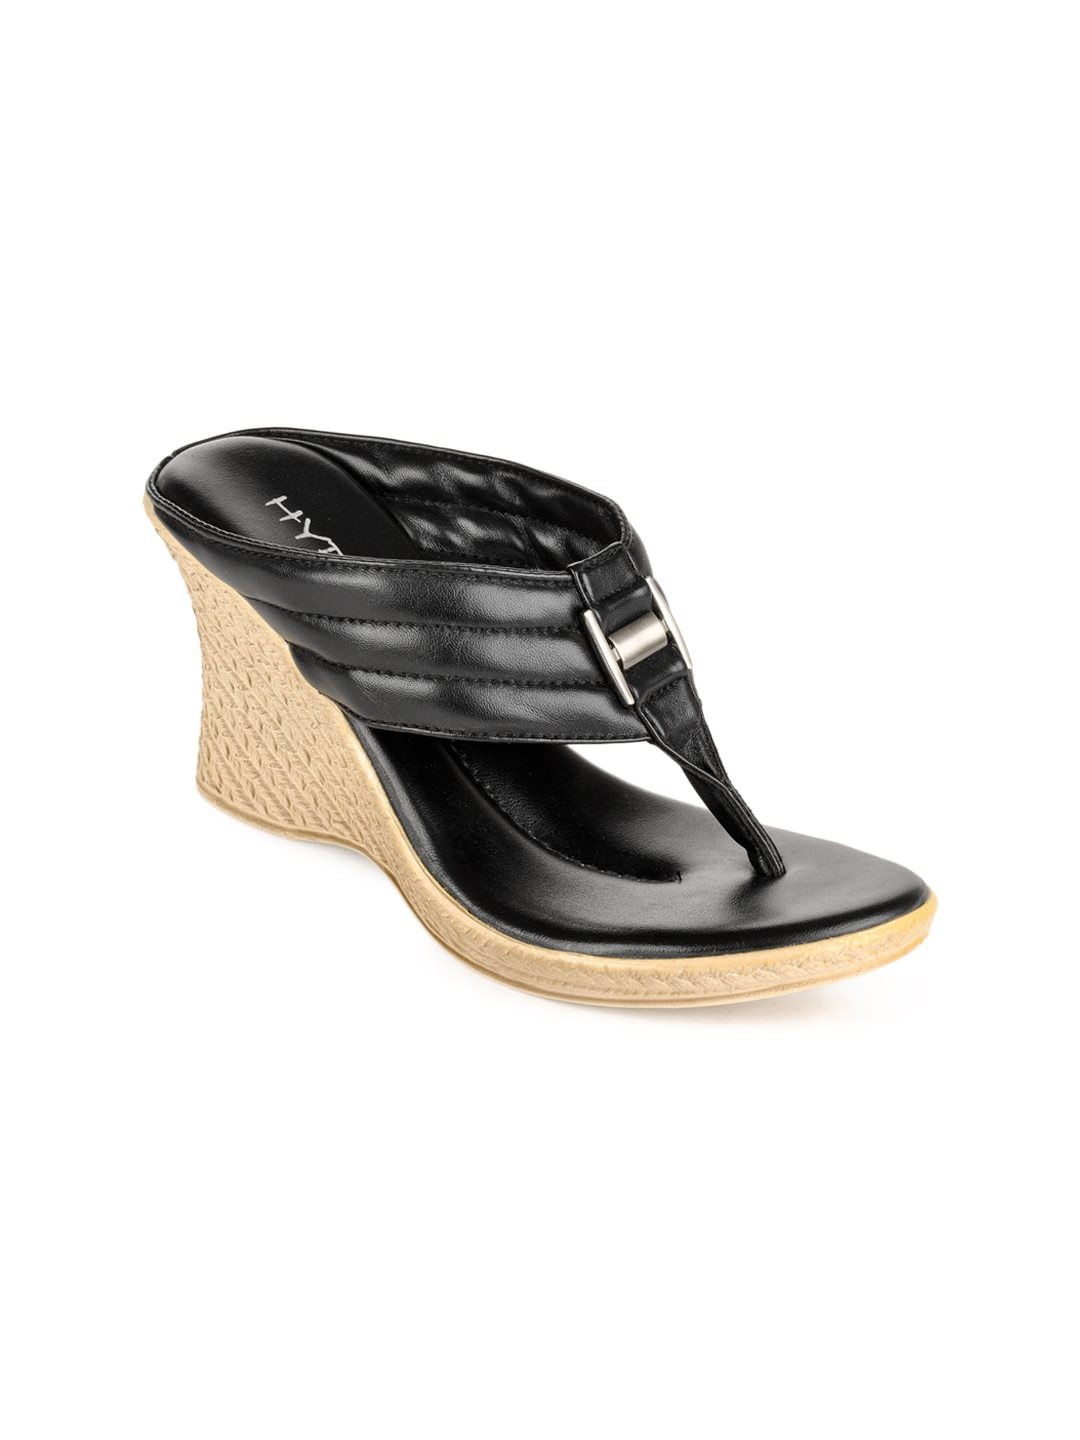 Hype Women Black Sandals at Rs.674